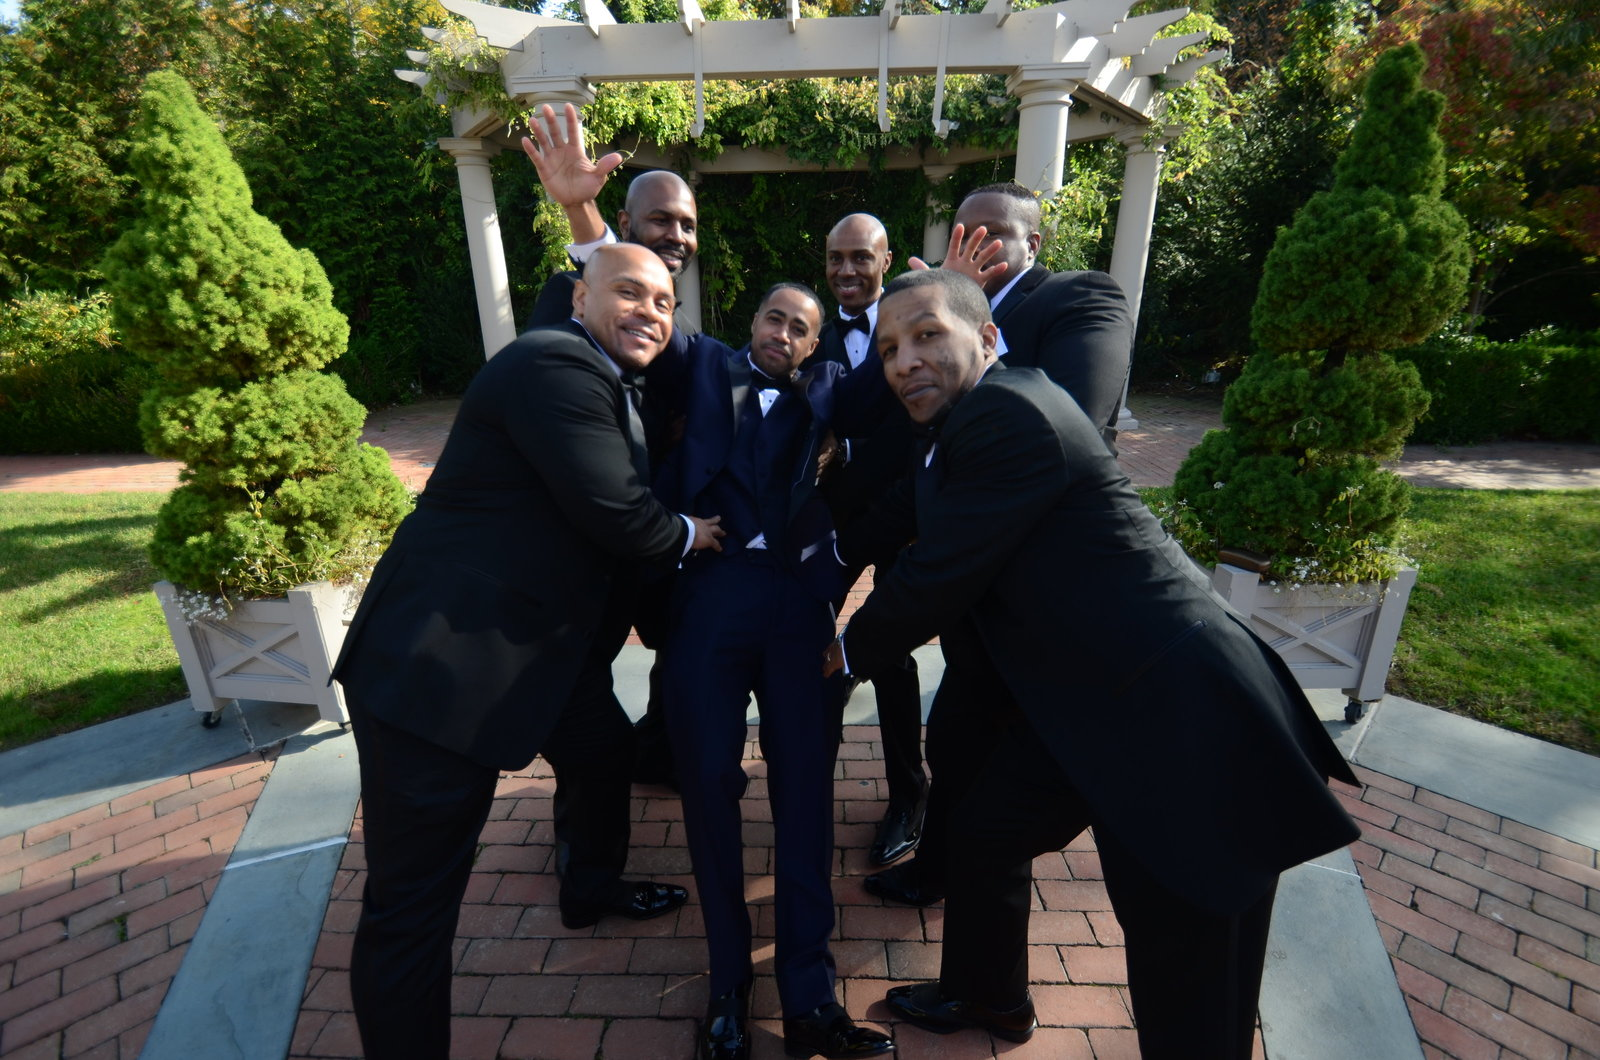 No greater feeling than when your groomsmen have your back on the most important day of your life. The Groom and his squad.